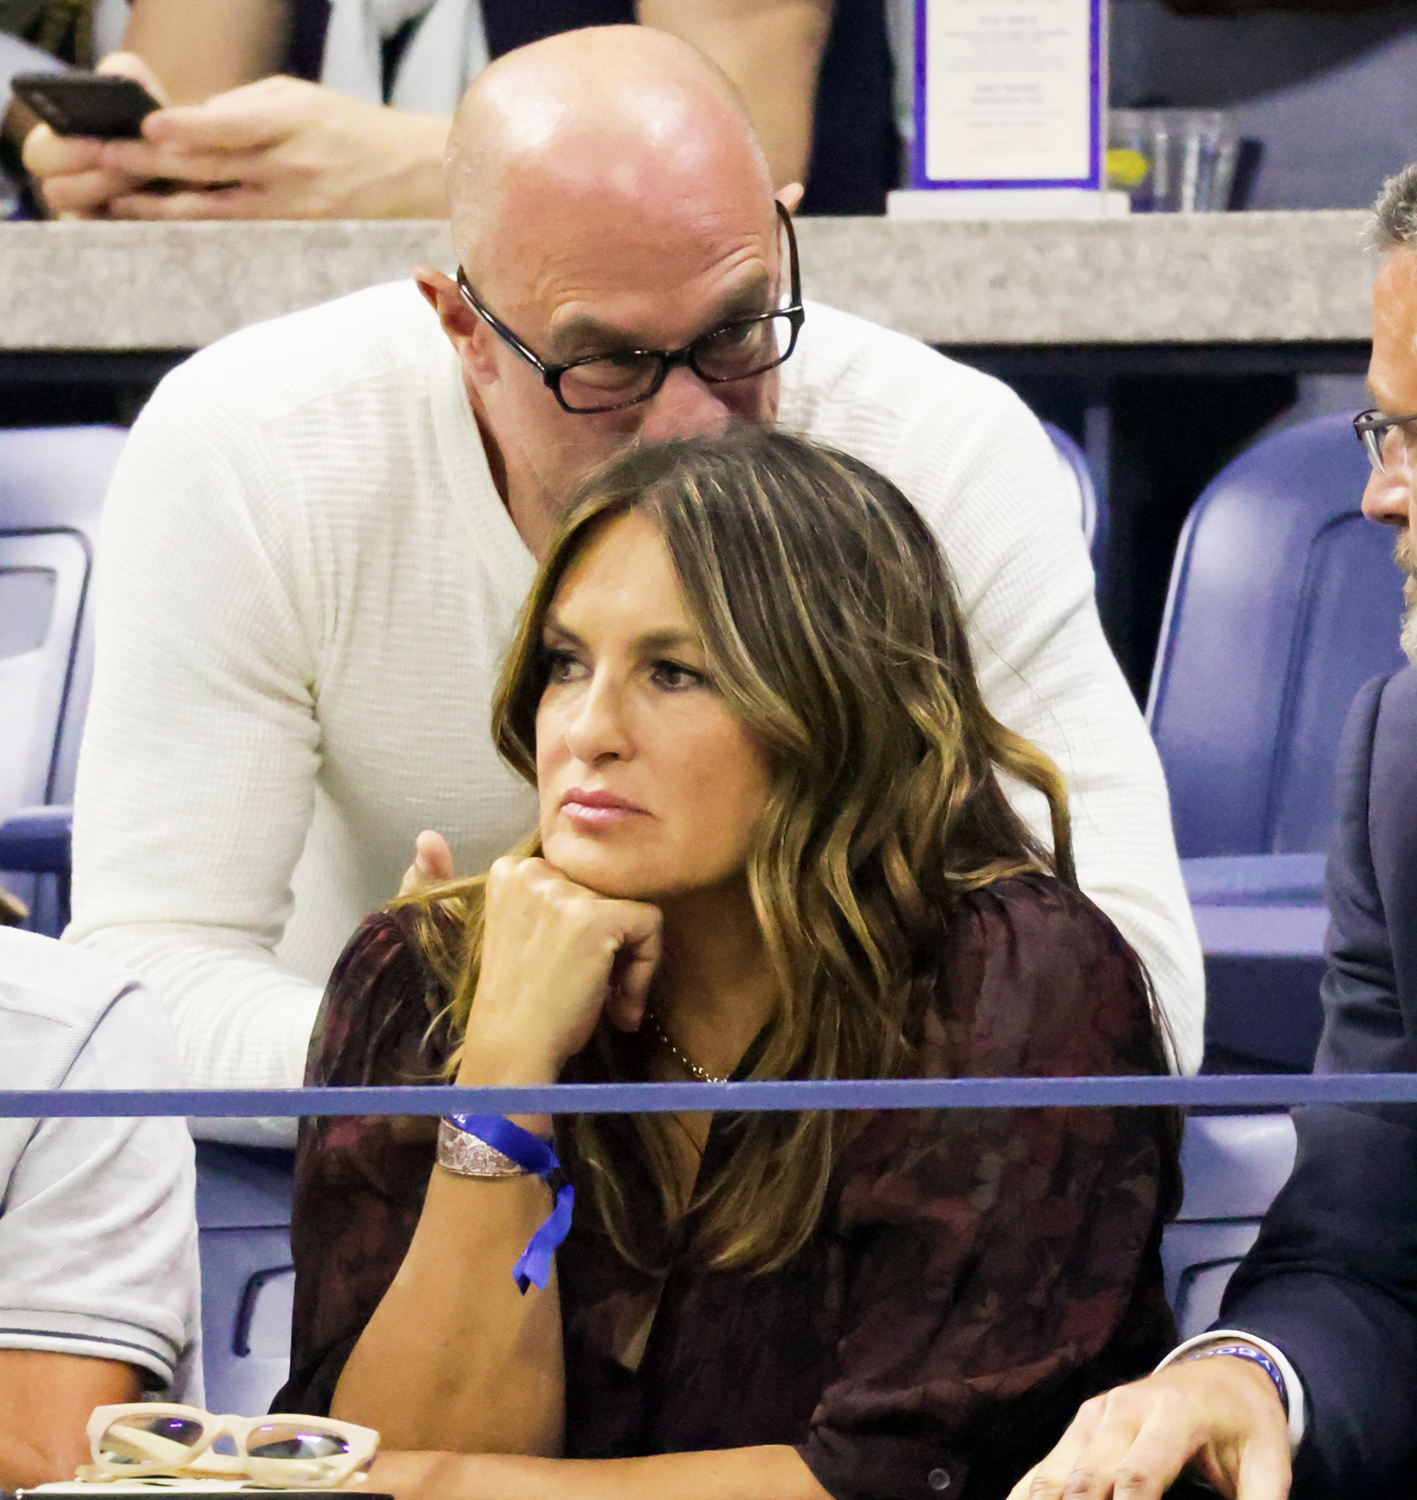 Mariska Hargitay and Chris Meloni in the Grey Goose Suite at the 2021 US Open, Friday, Sep. 10, 2021 in Flushing, NY.